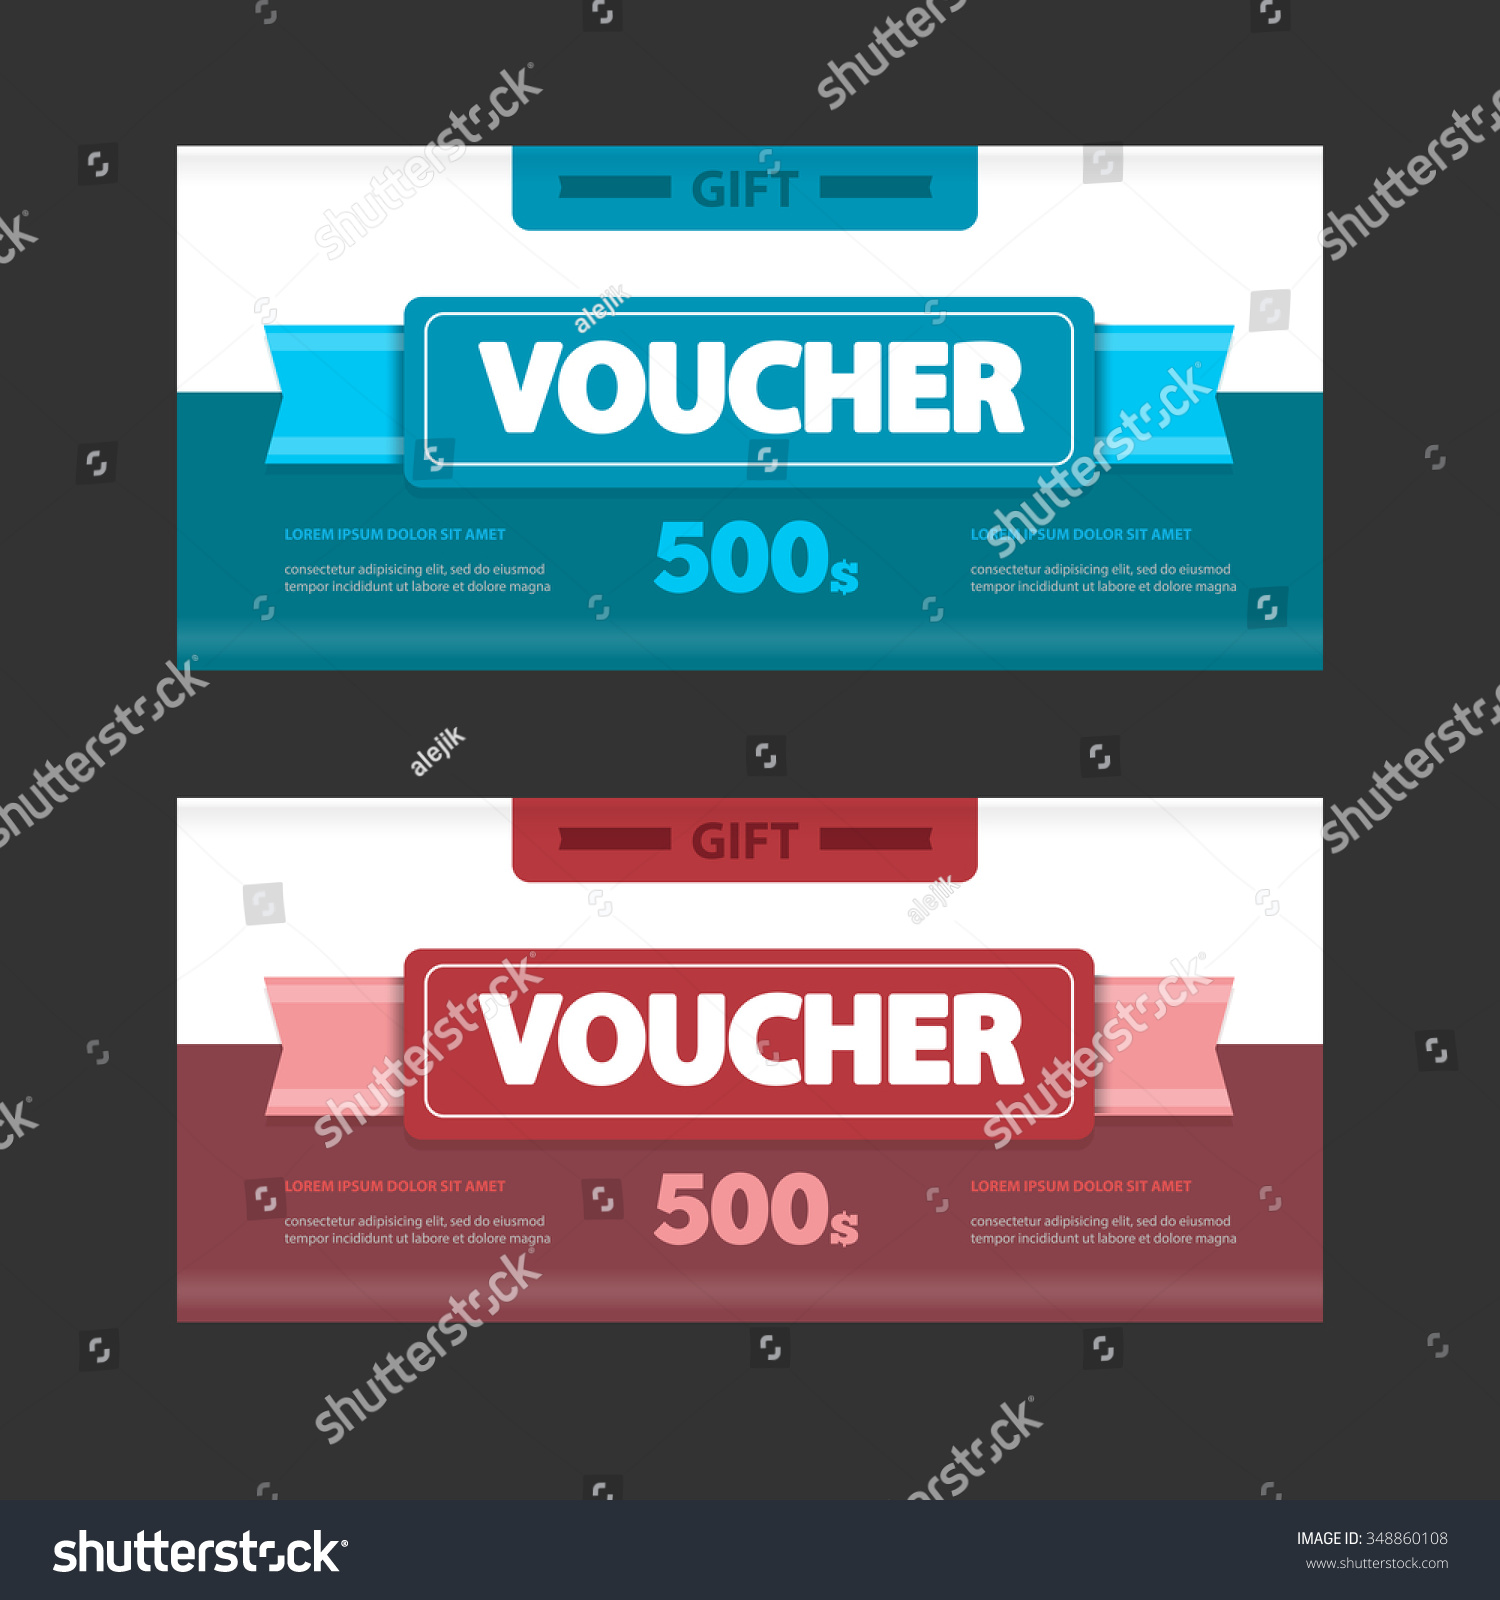 Two Coupon Voucher Design Gift Voucher Stock Vector Royalty Free